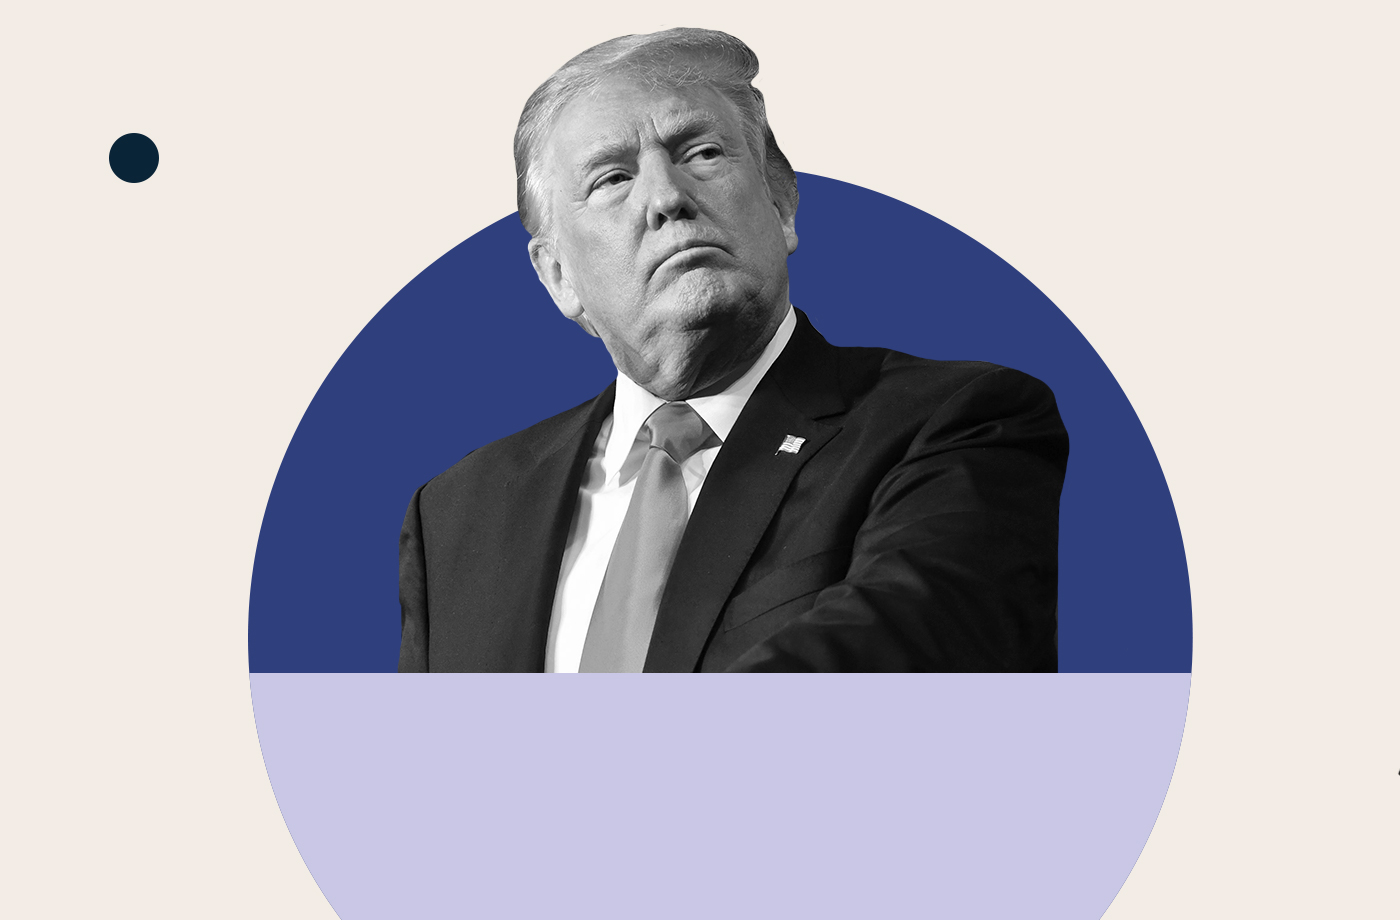 Thumbnail for Here's How Donald Trump's Perspectives and Policies Impact Your Well-Being